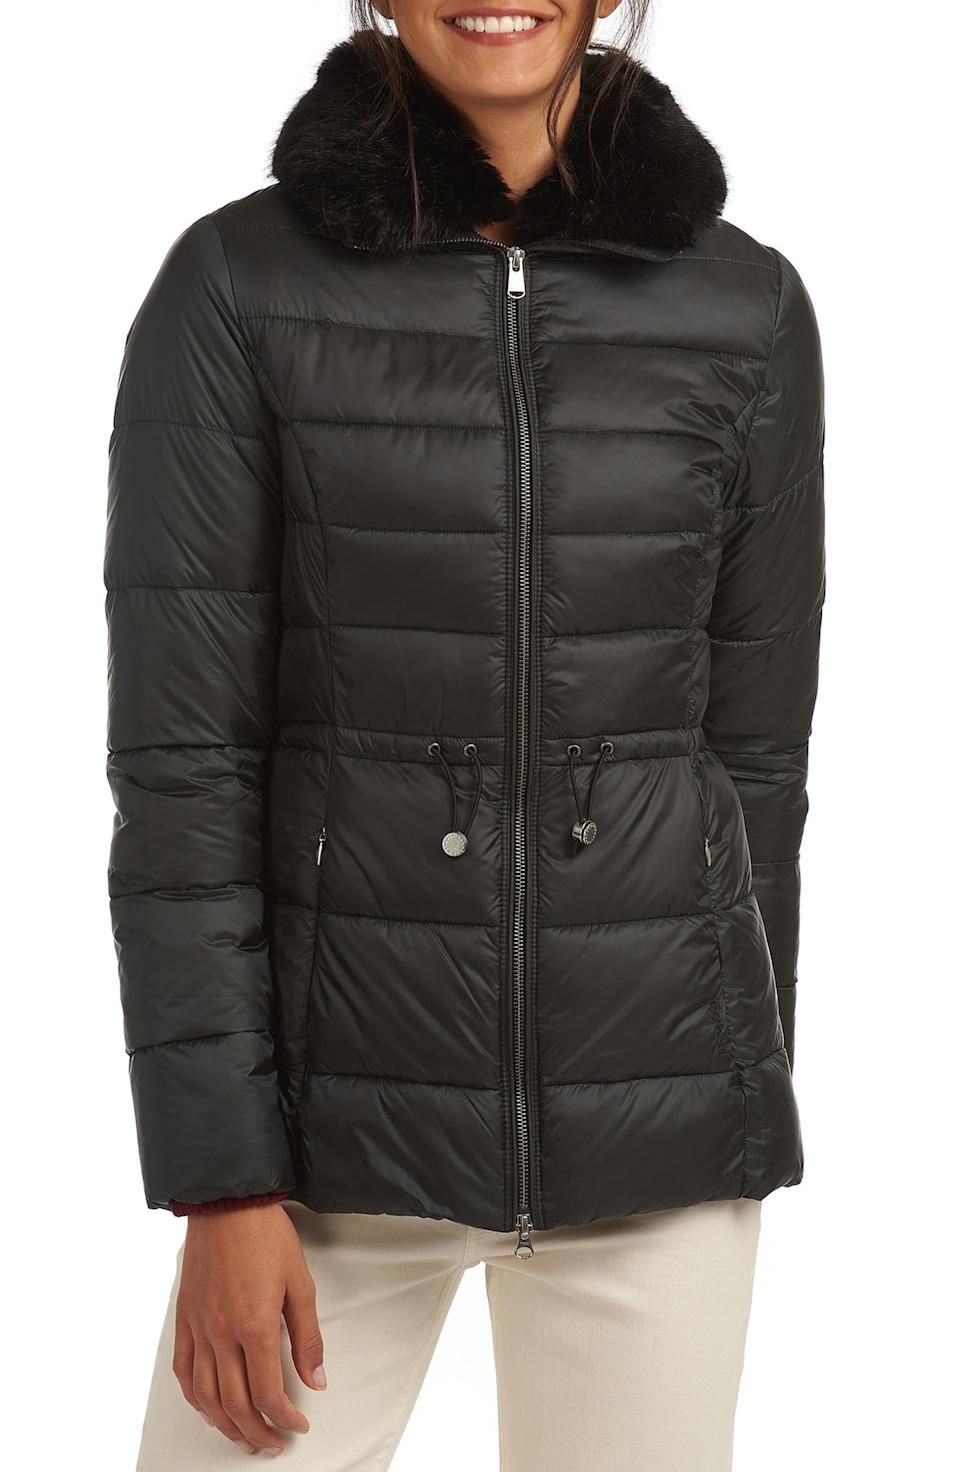 Barbour Angus Faux Fur Trim Puffer Jacket. Image via Nordstrom.